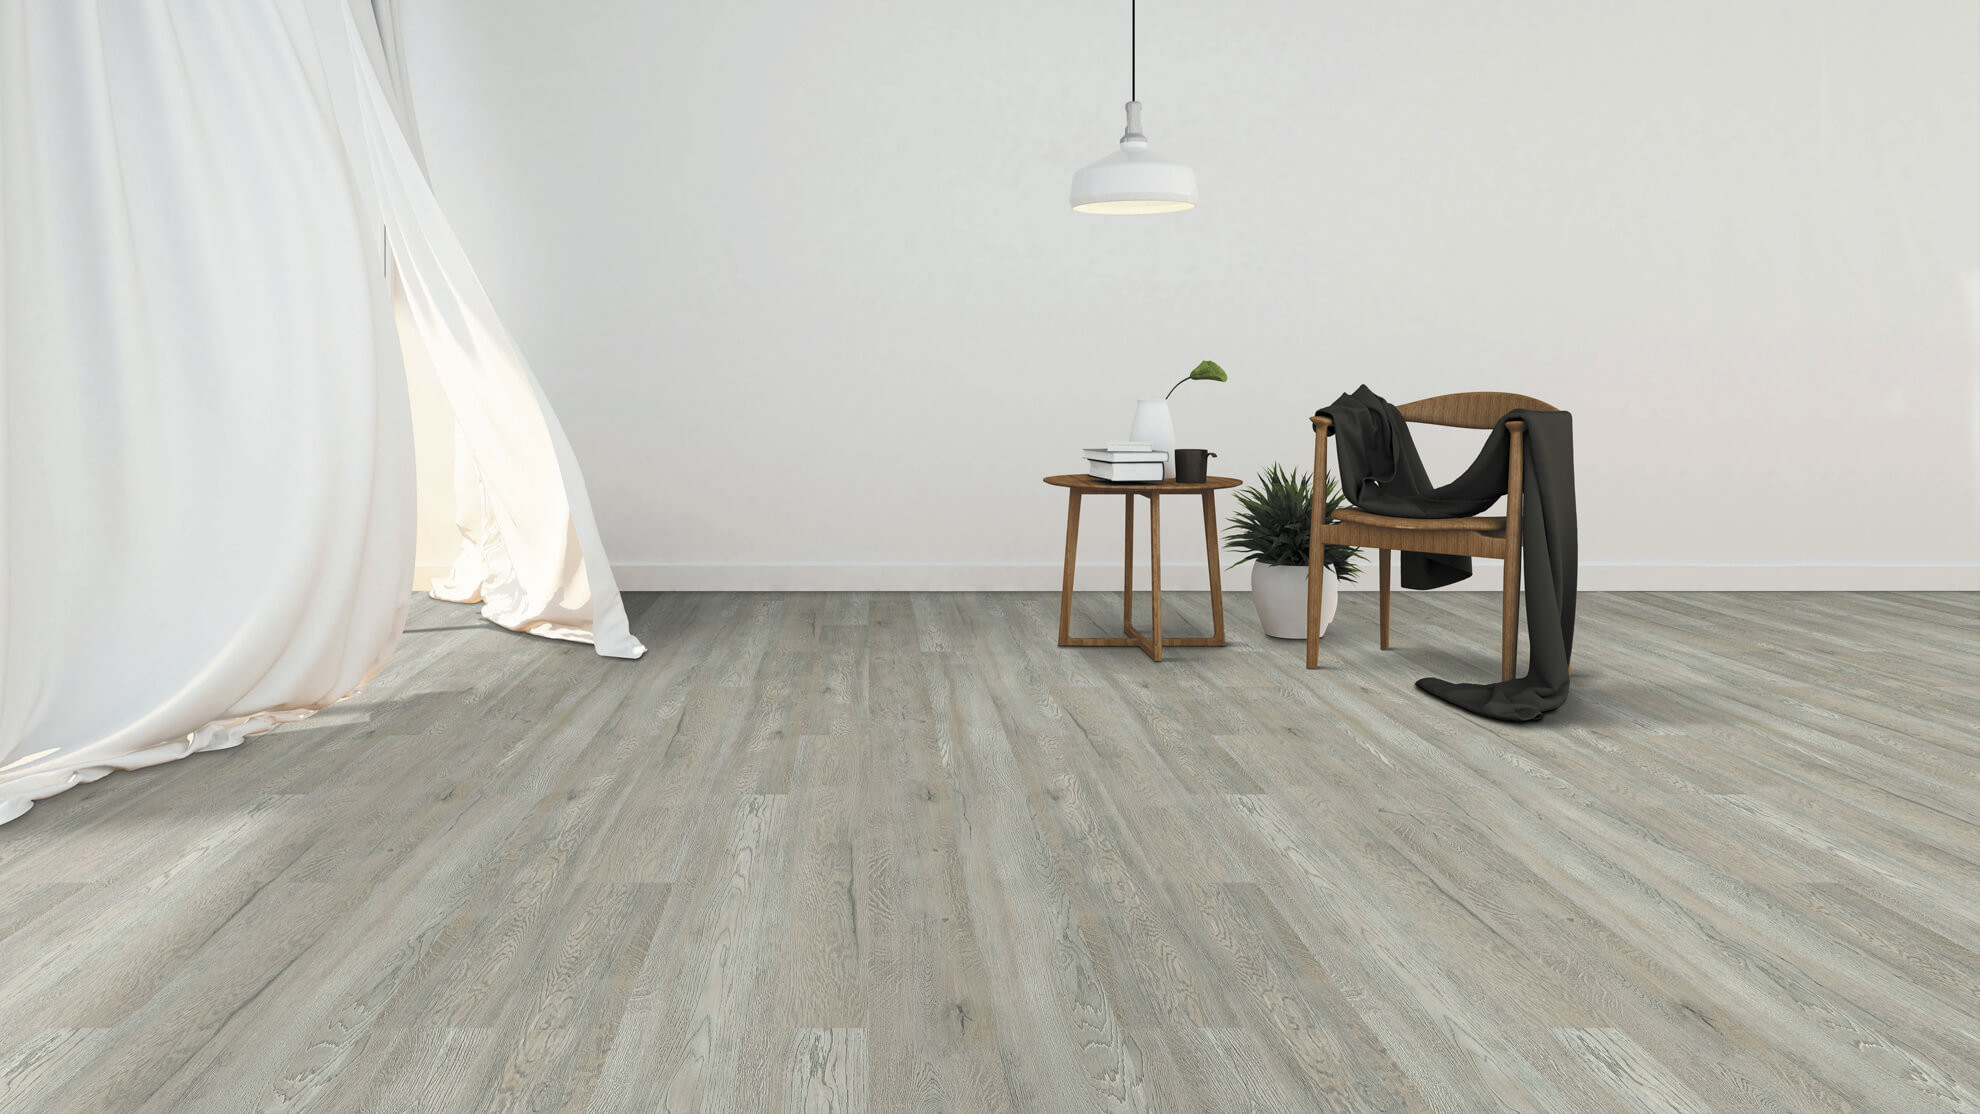 hardwood floor cost per foot of earthwerks flooring in noble classic plus alaska oak ncr 9708